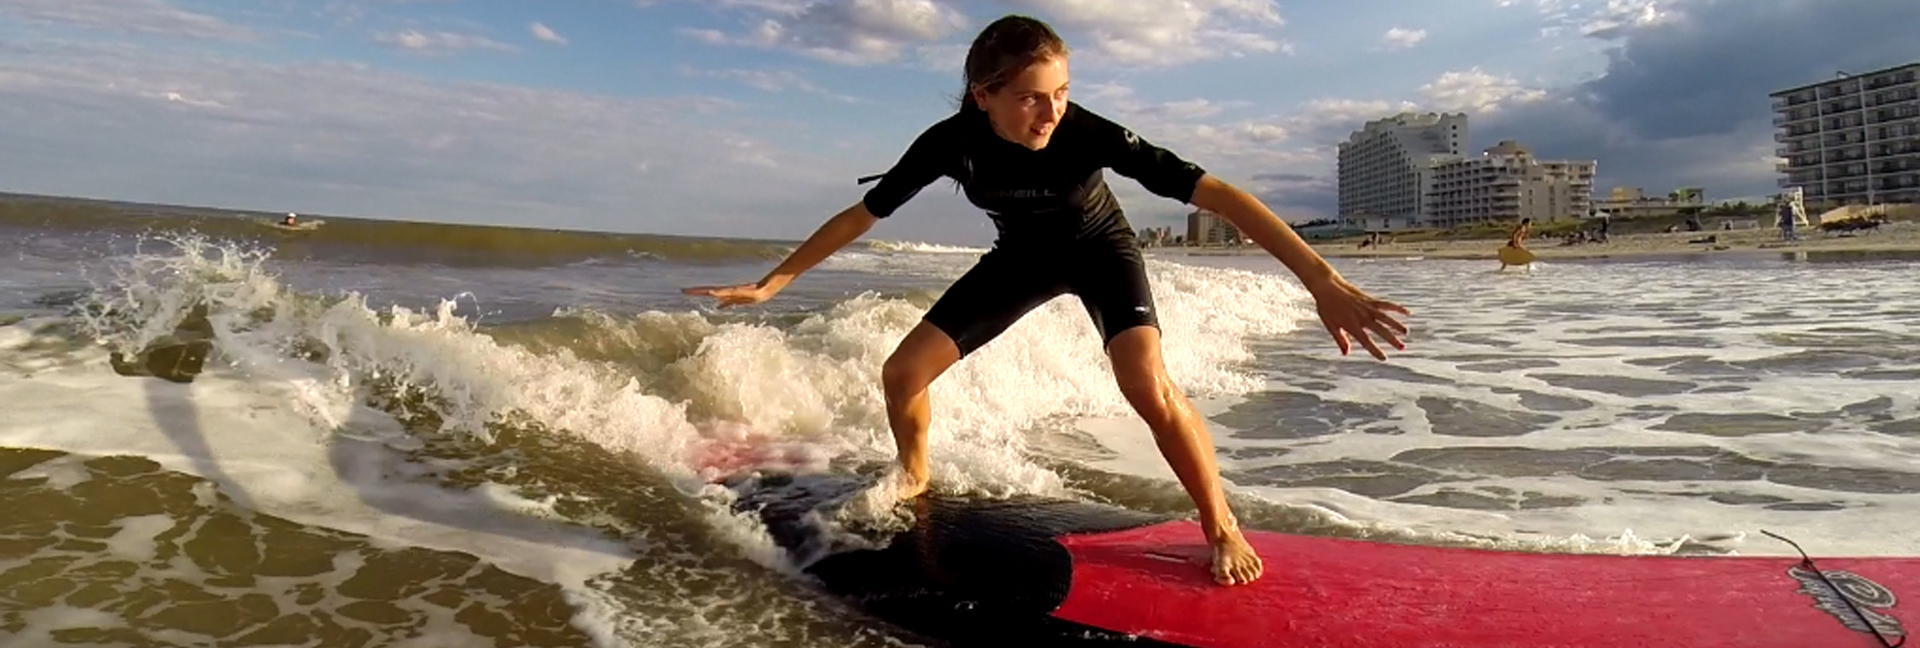 girl balances on red surfboard in black wetsuit